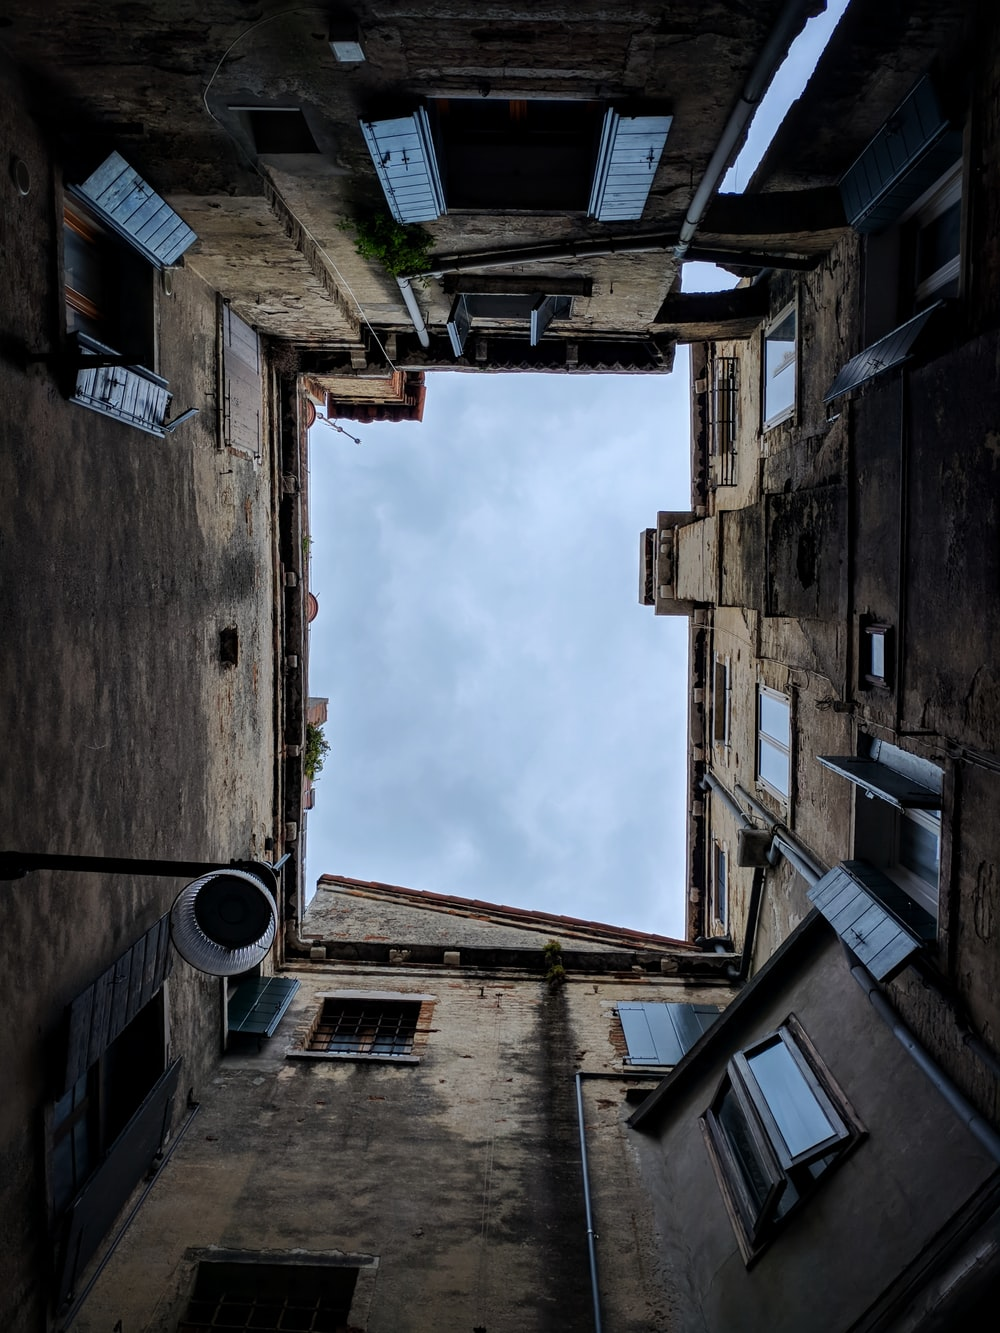 worm's eye view of a gray building